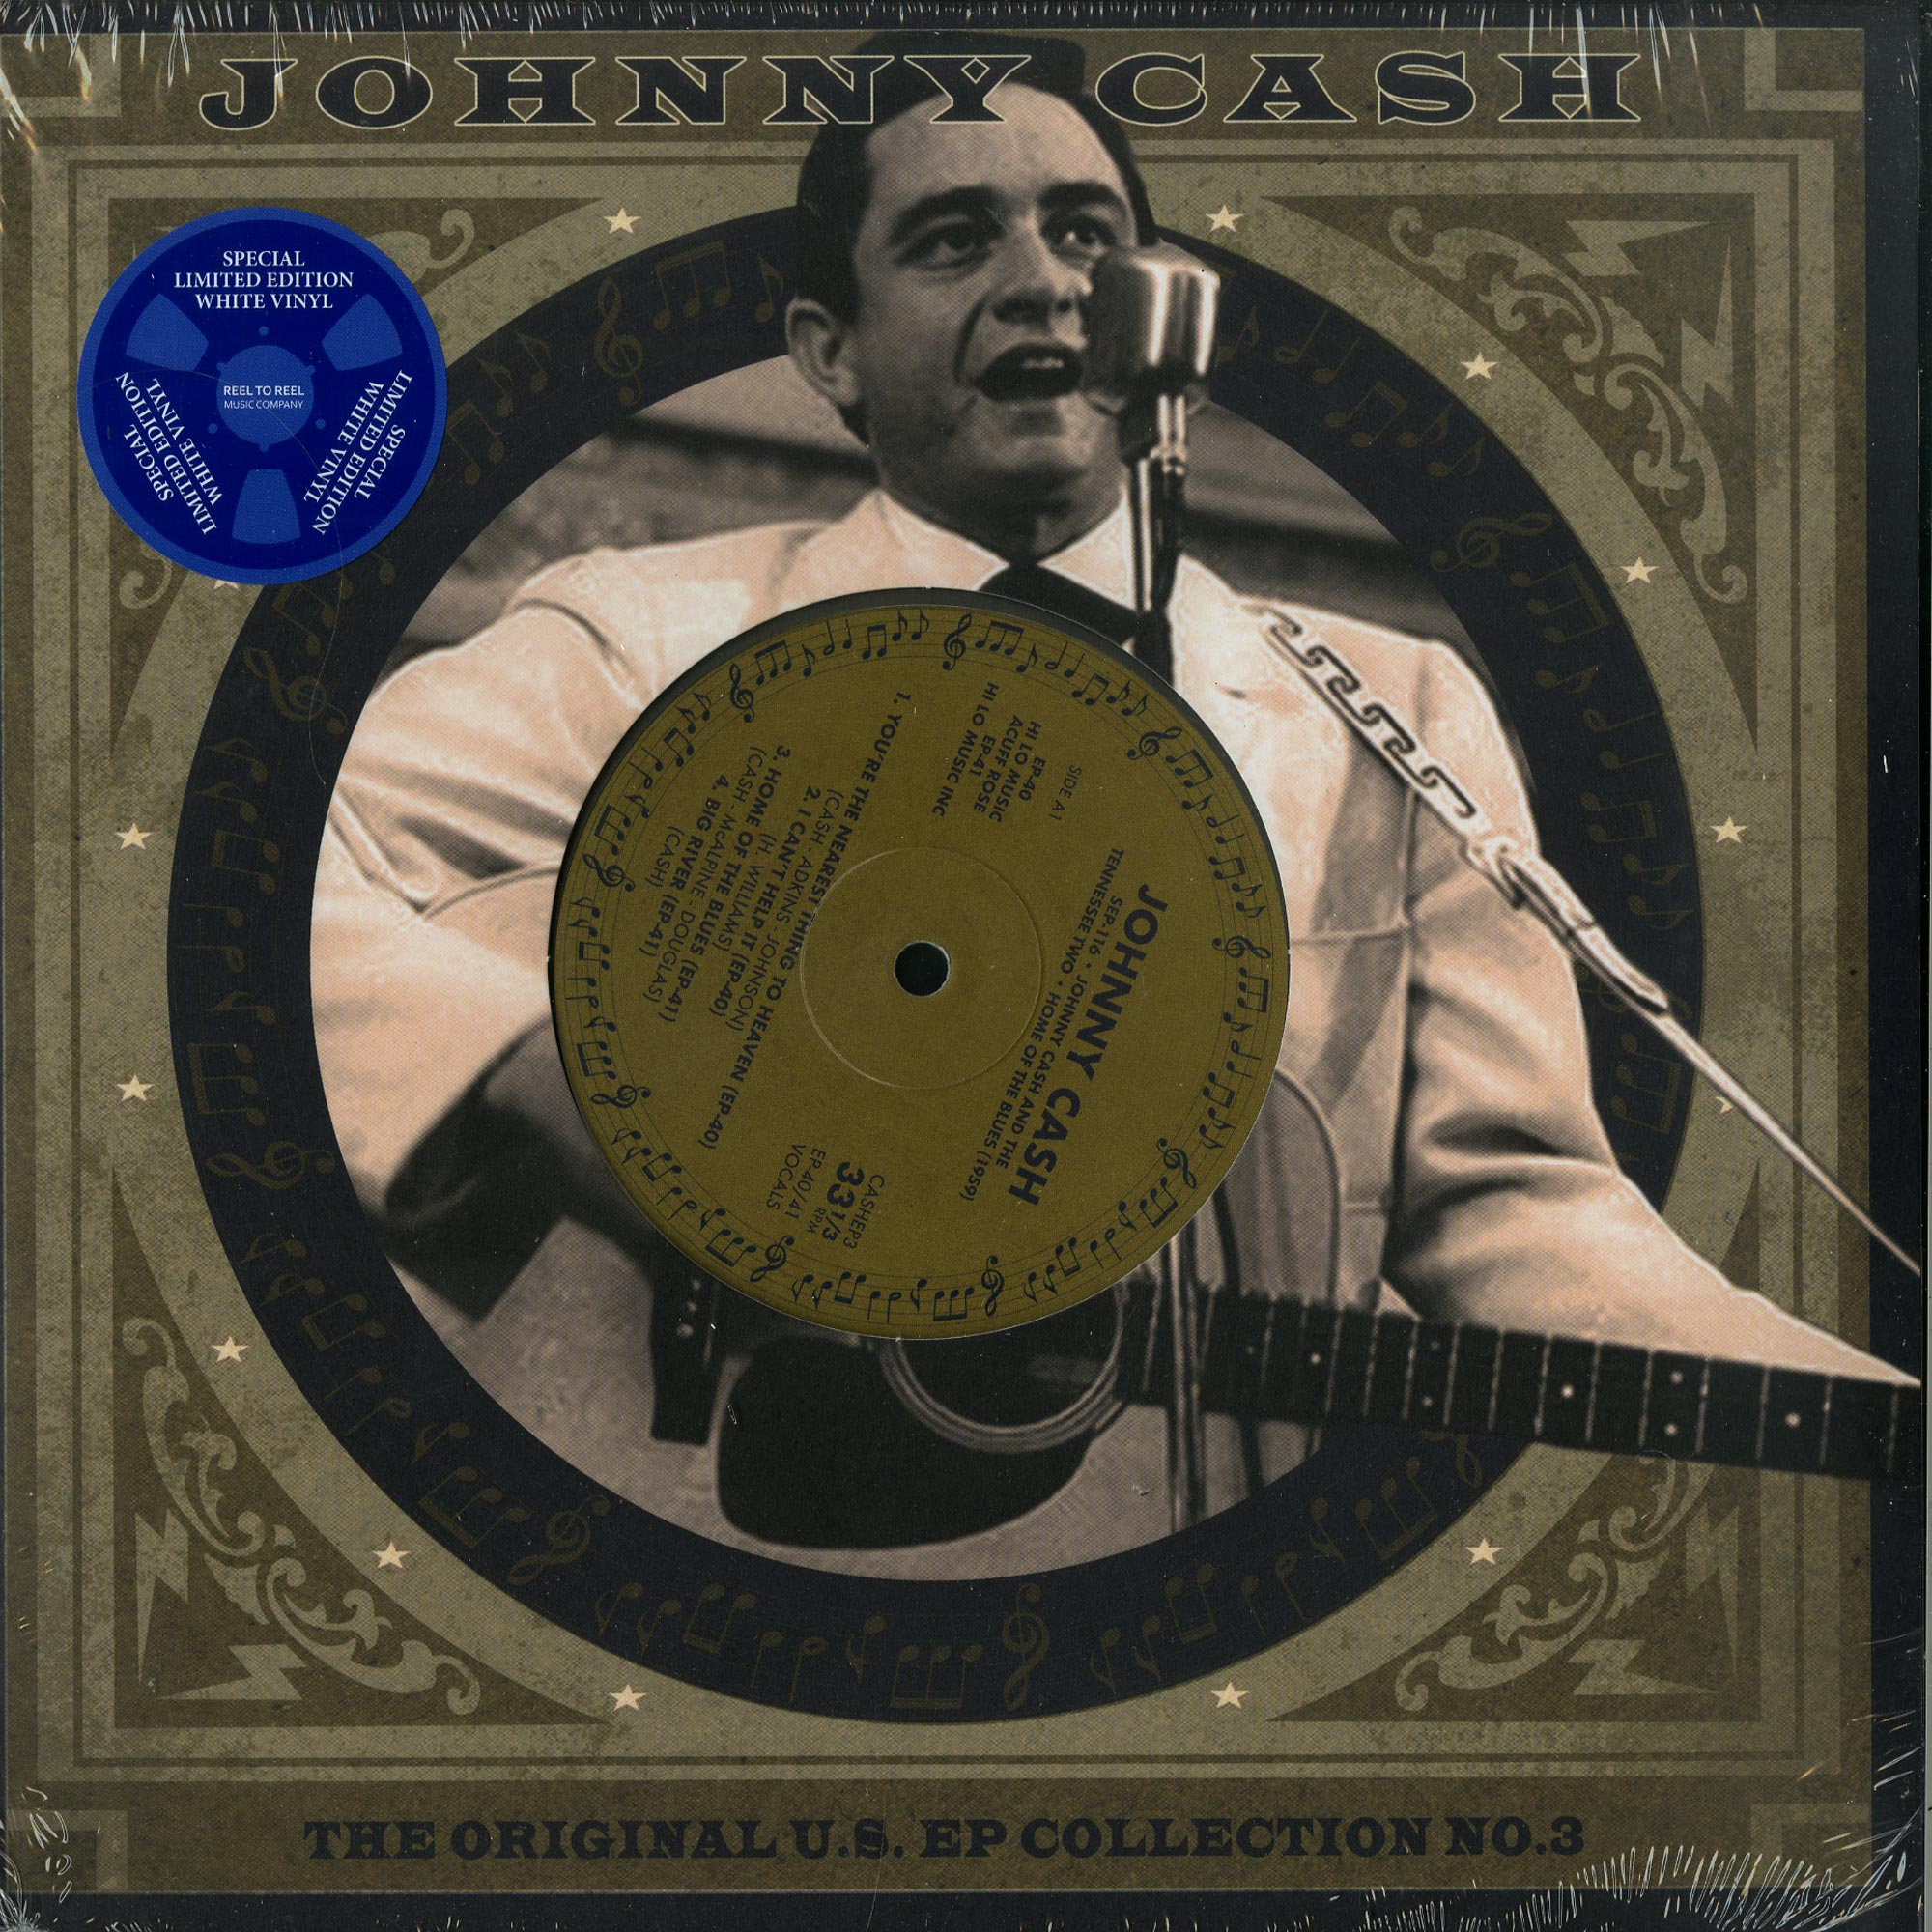 Johnny Cash - THE ORIGINAL U.S. EP COLLECTION VOL. 3